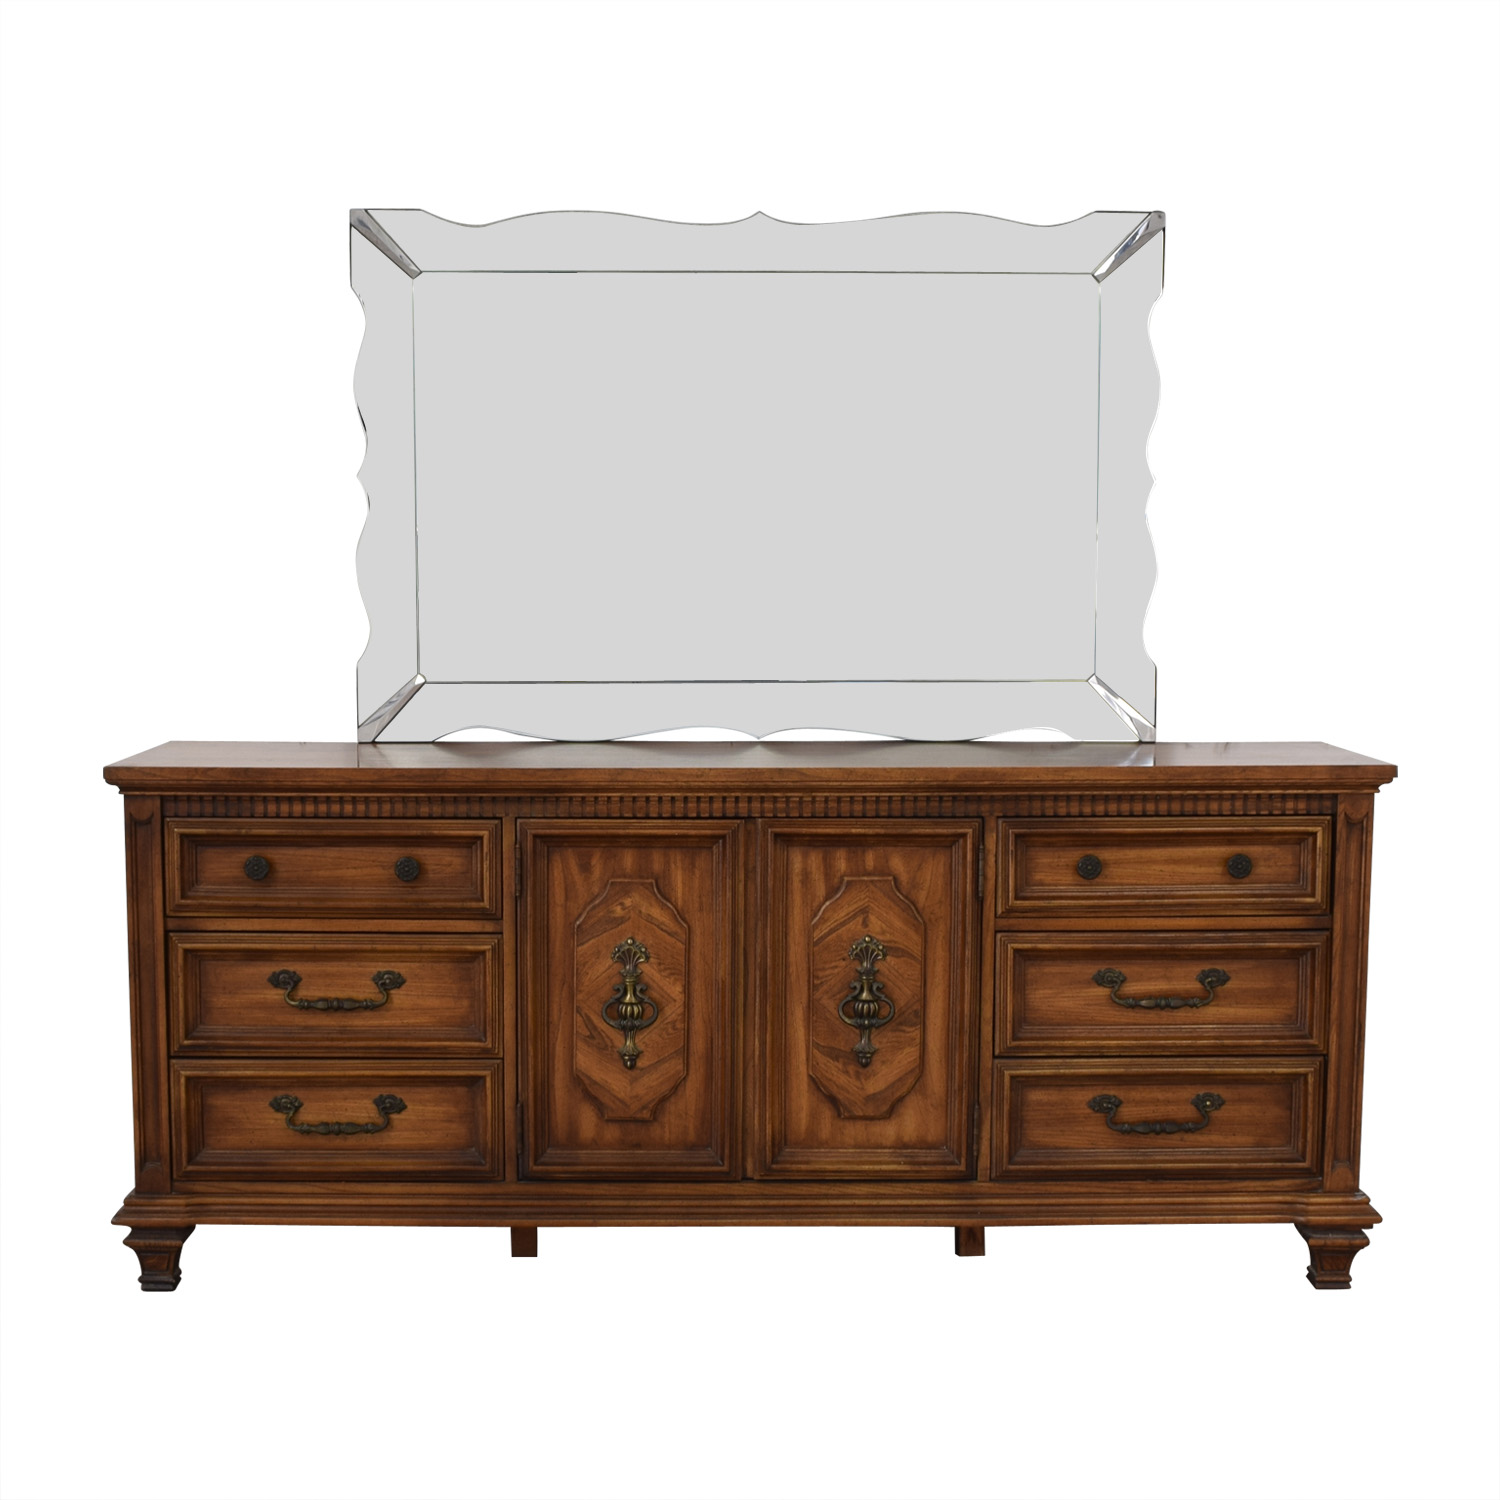 Albe Furniture Albe Furniture Nine-Drawer Dresser with Scalloped Mirror Dressers